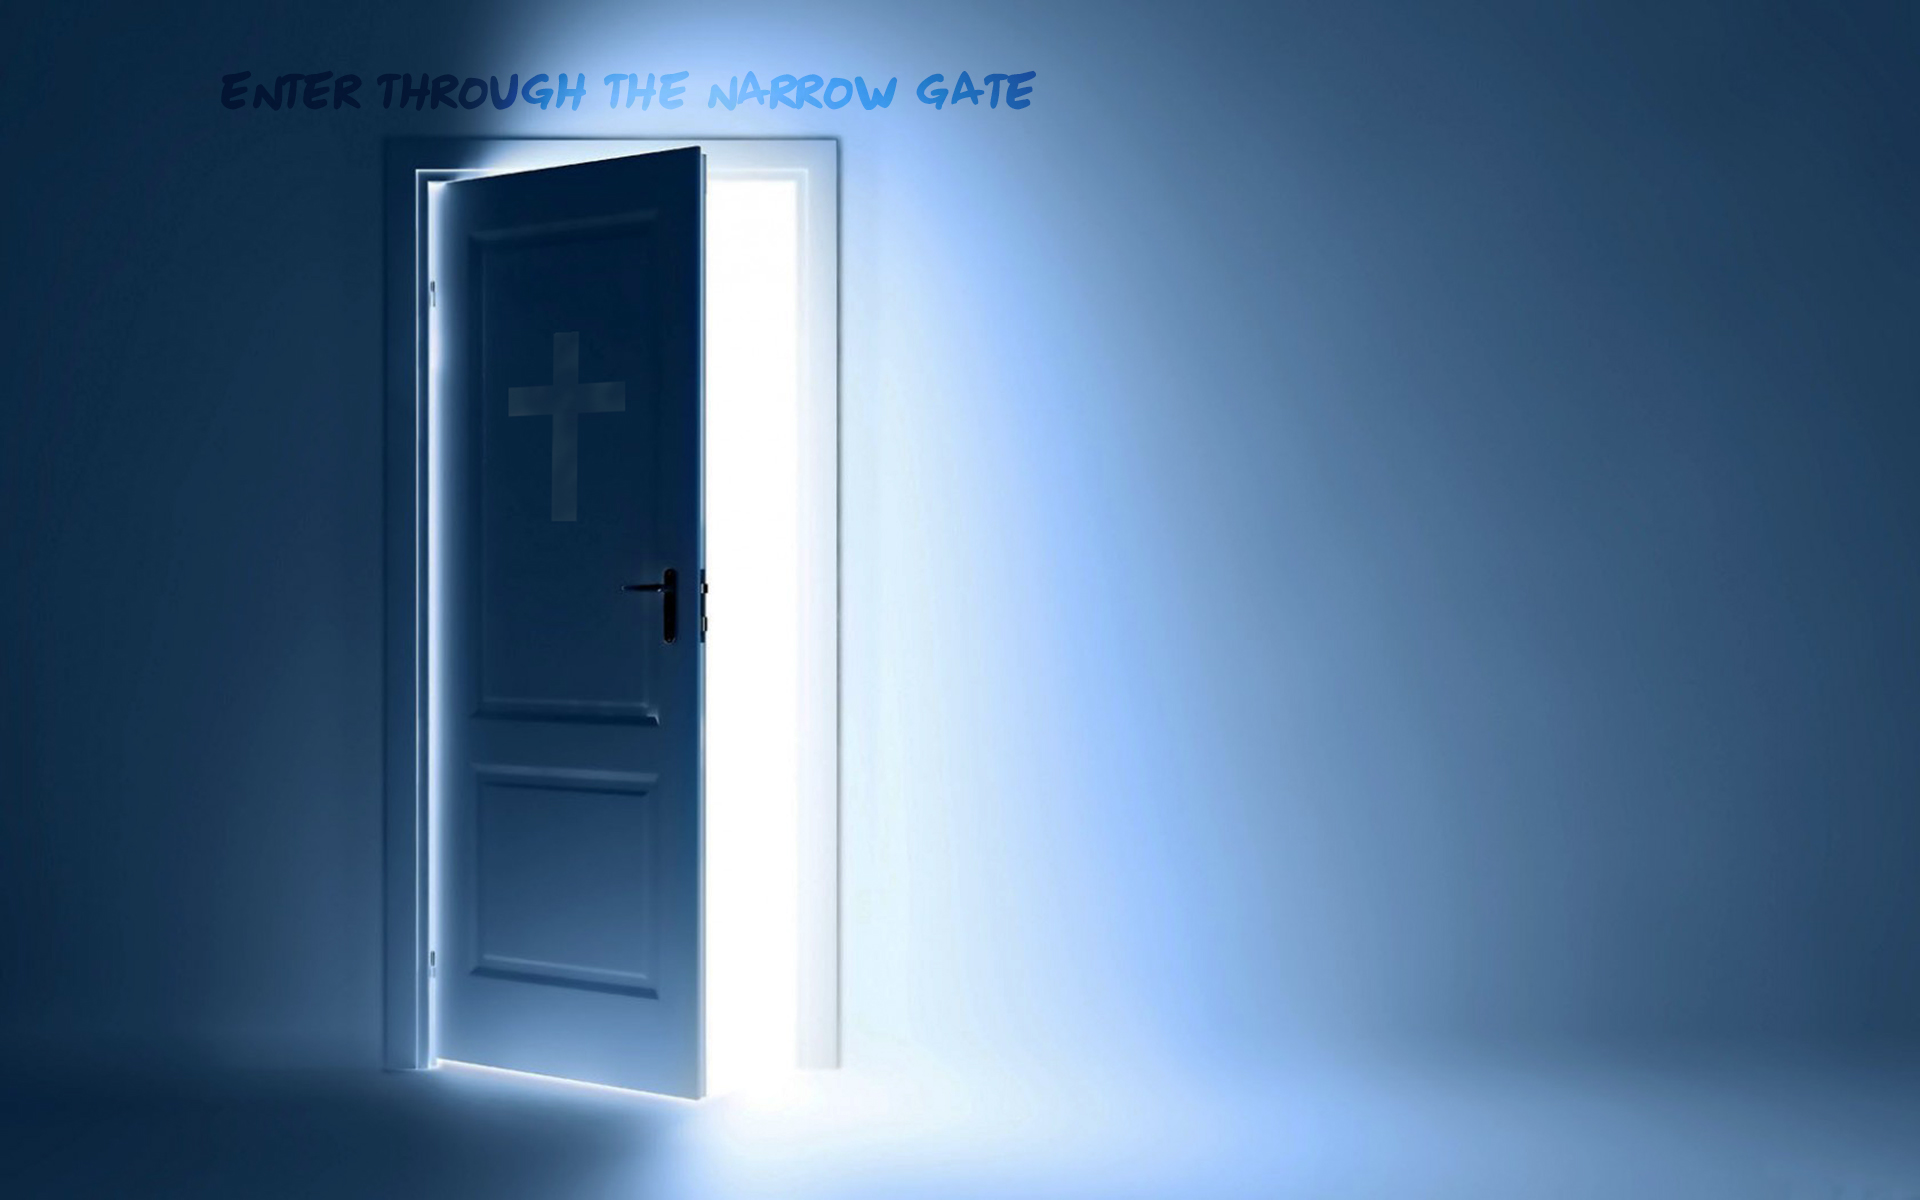 Praise And Worship Wallpaper Hd The Narrow Gate Christian Wallpapers